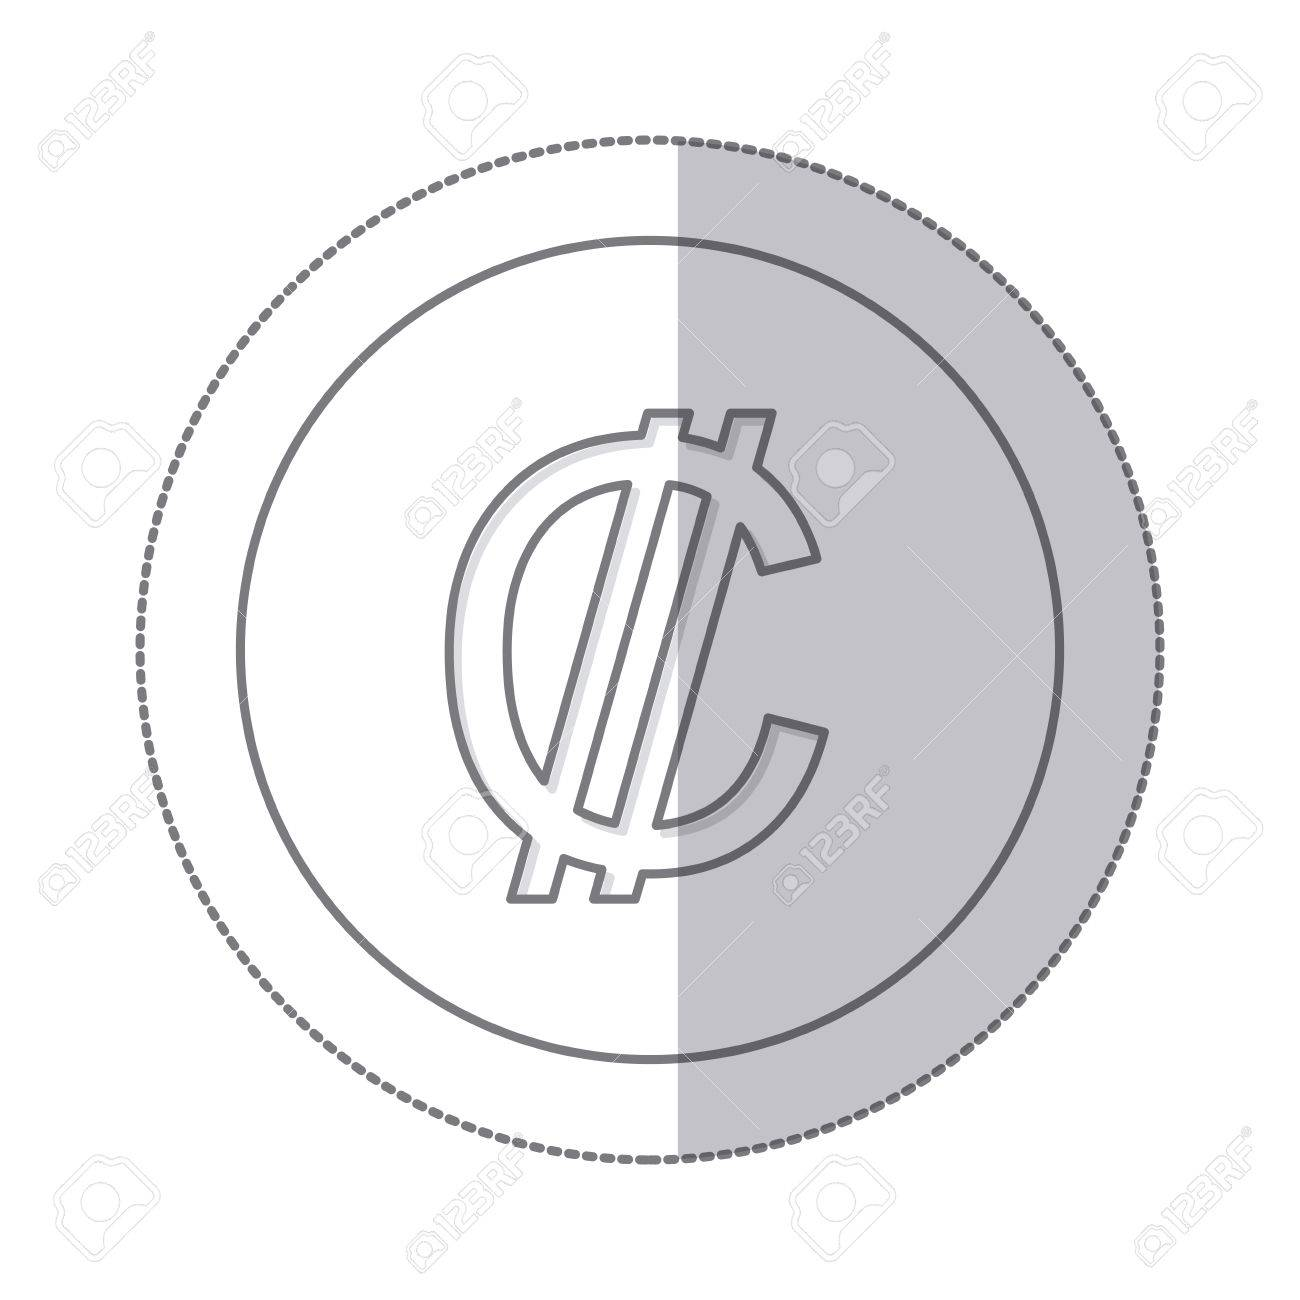 Middle shadow monochrome circle with currency symbol of colon middle shadow monochrome circle with currency symbol of colon costa rica vector illustration stock vector biocorpaavc Gallery